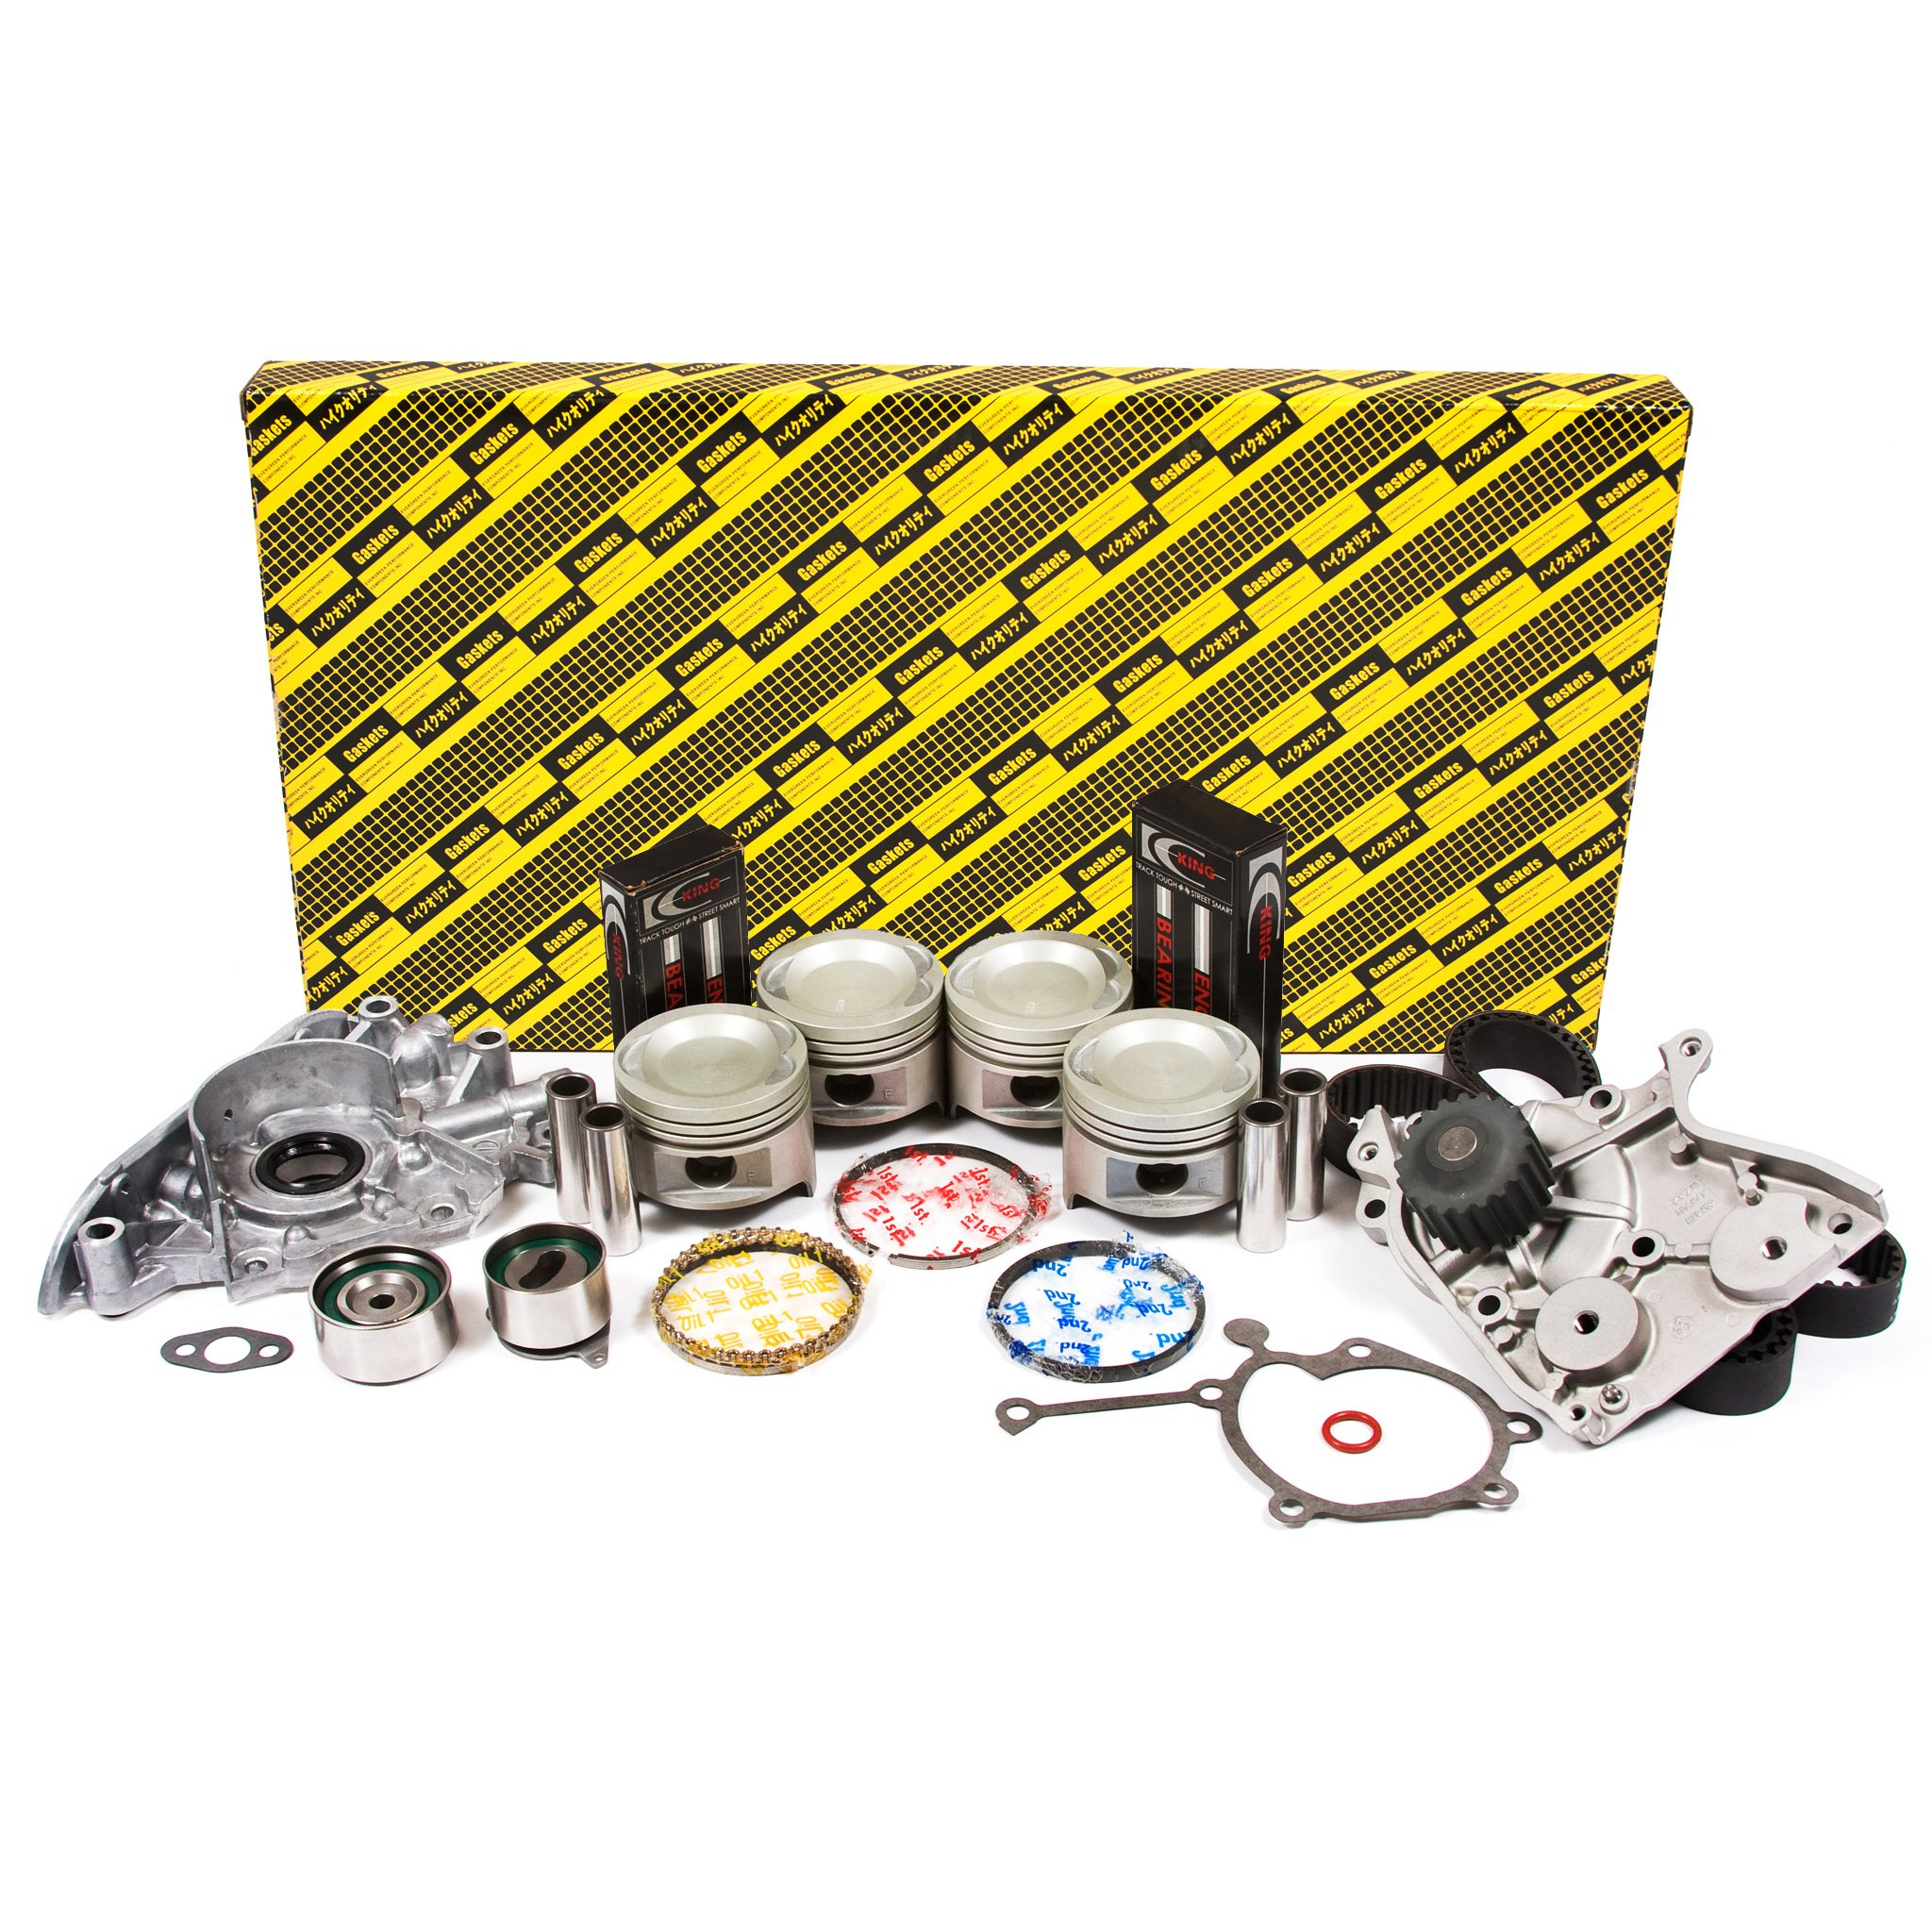 Evergreen OK6003/0/0/0 87-93 Mazda B2200 2.2 SOHC 8V F2 Engine Rebuild Kit